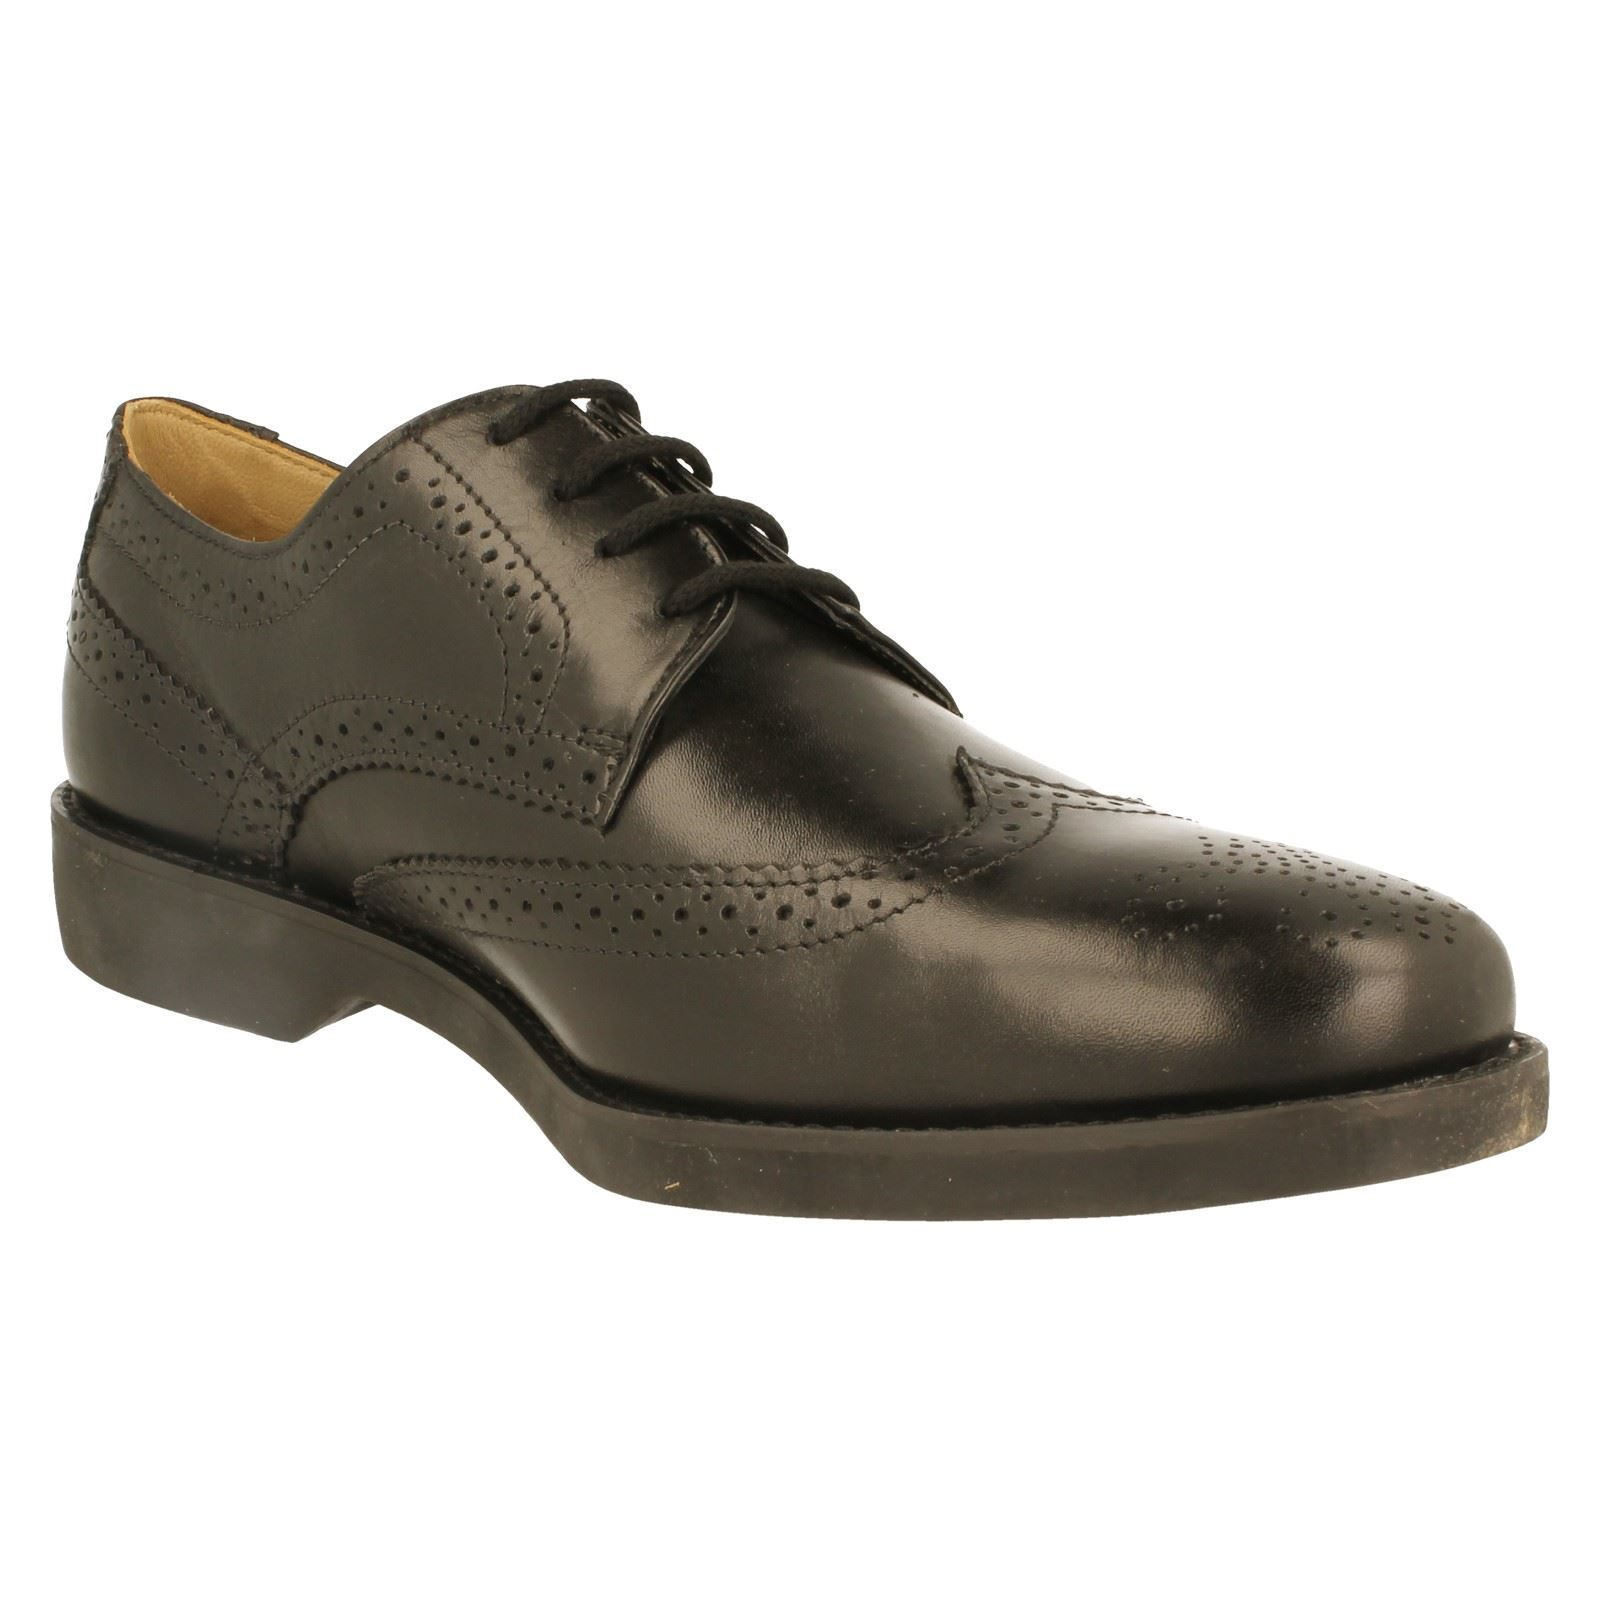 Uomo Schuhes by Anatomic & Co Co Co 'Tucano' The Style  K 18919d